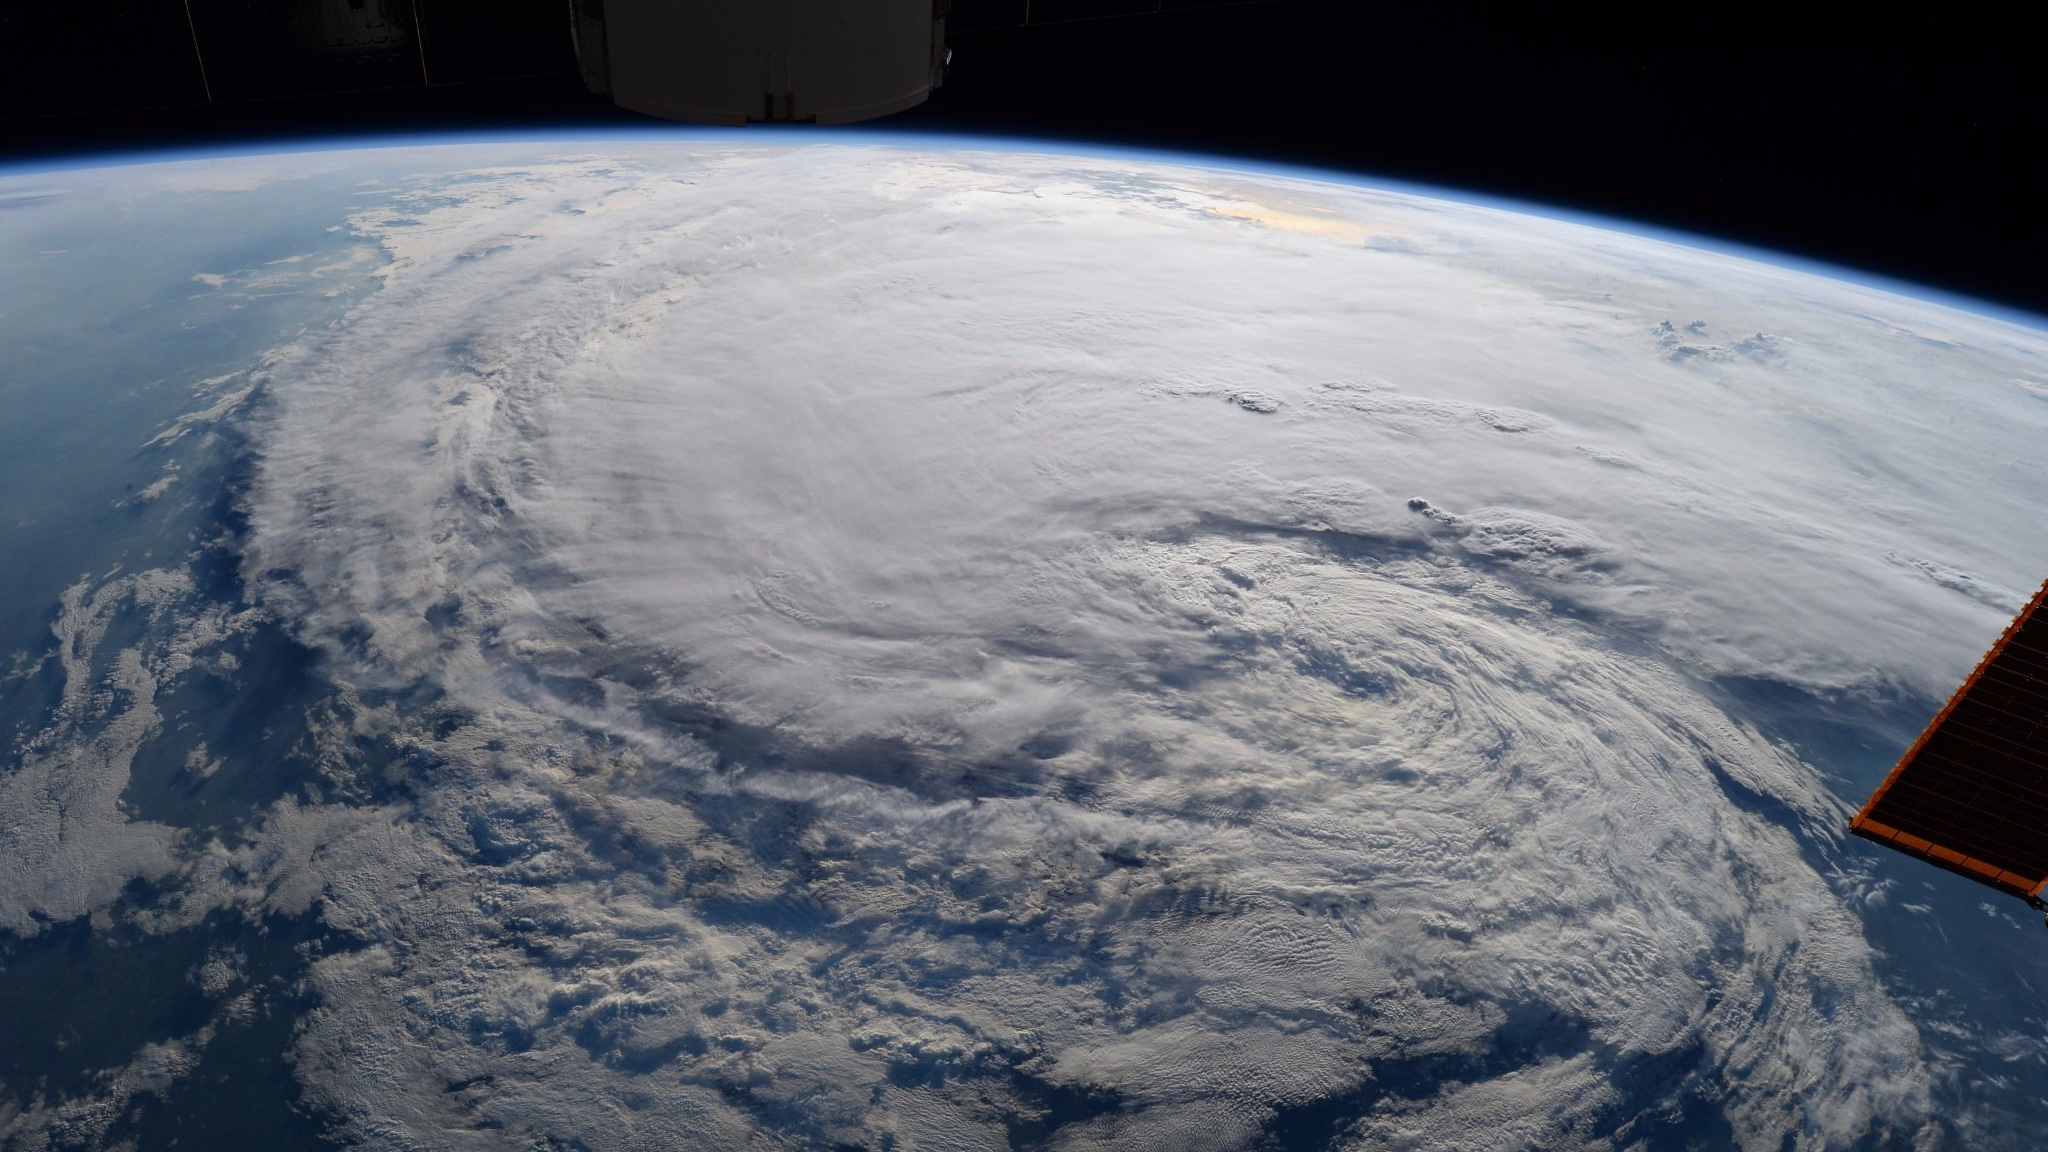 Tropical storm Harvey, photographed from the International Space Station in 2017. (NASA Goddard Space Flight Center / Flickr)